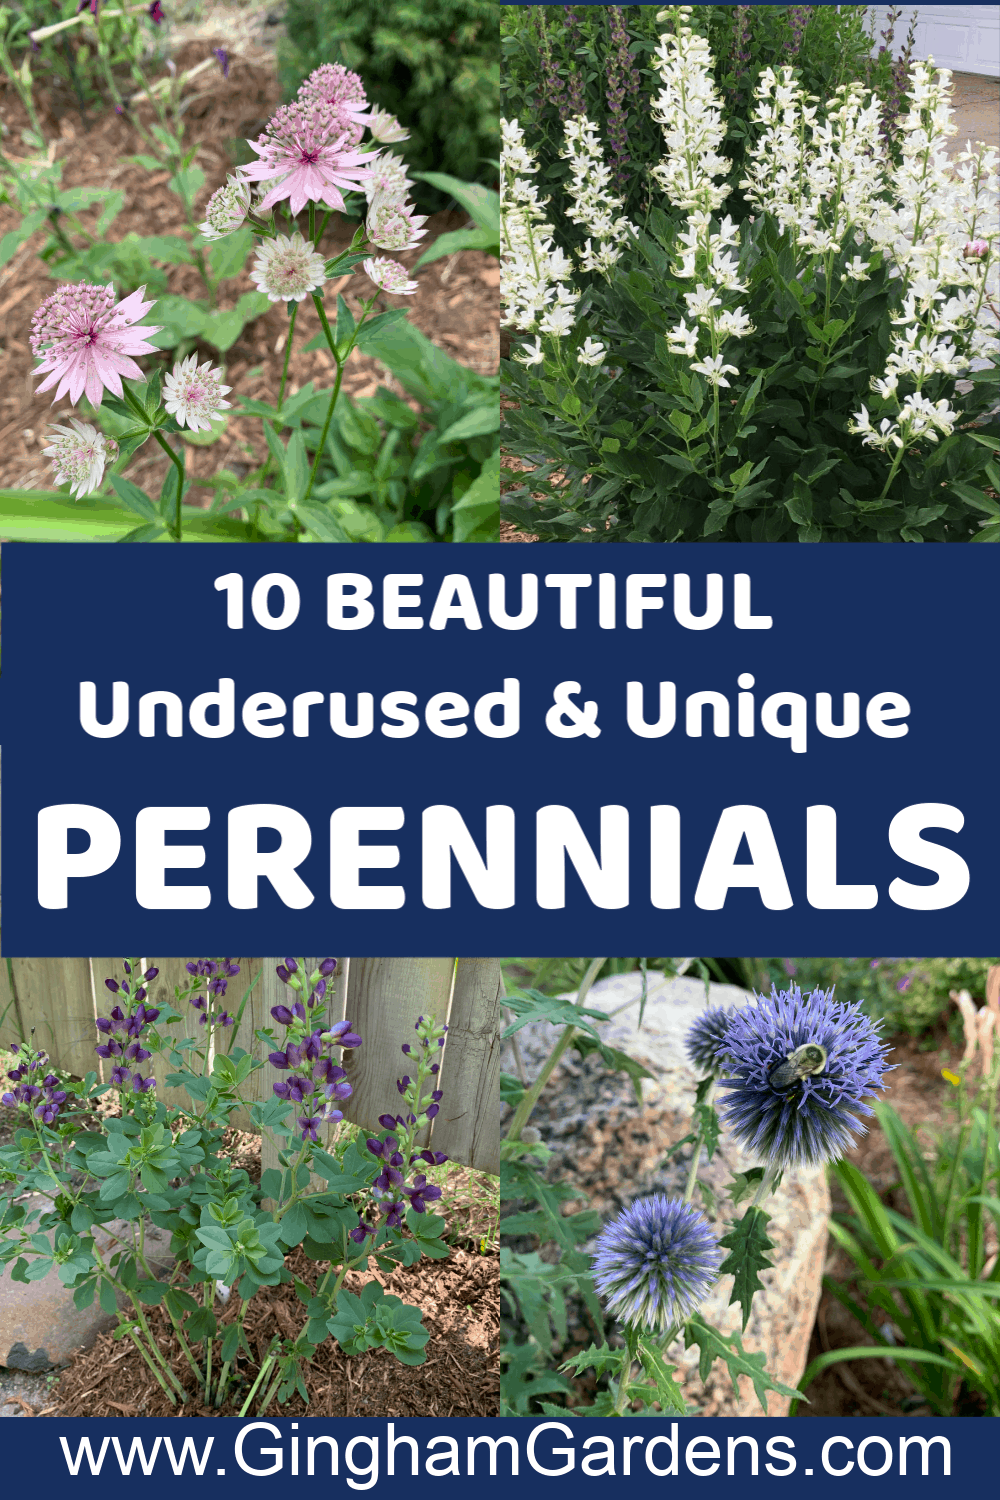 Images of Perennial Flowers with text overlay - 10 Beautiful Underused & Unique Perennials